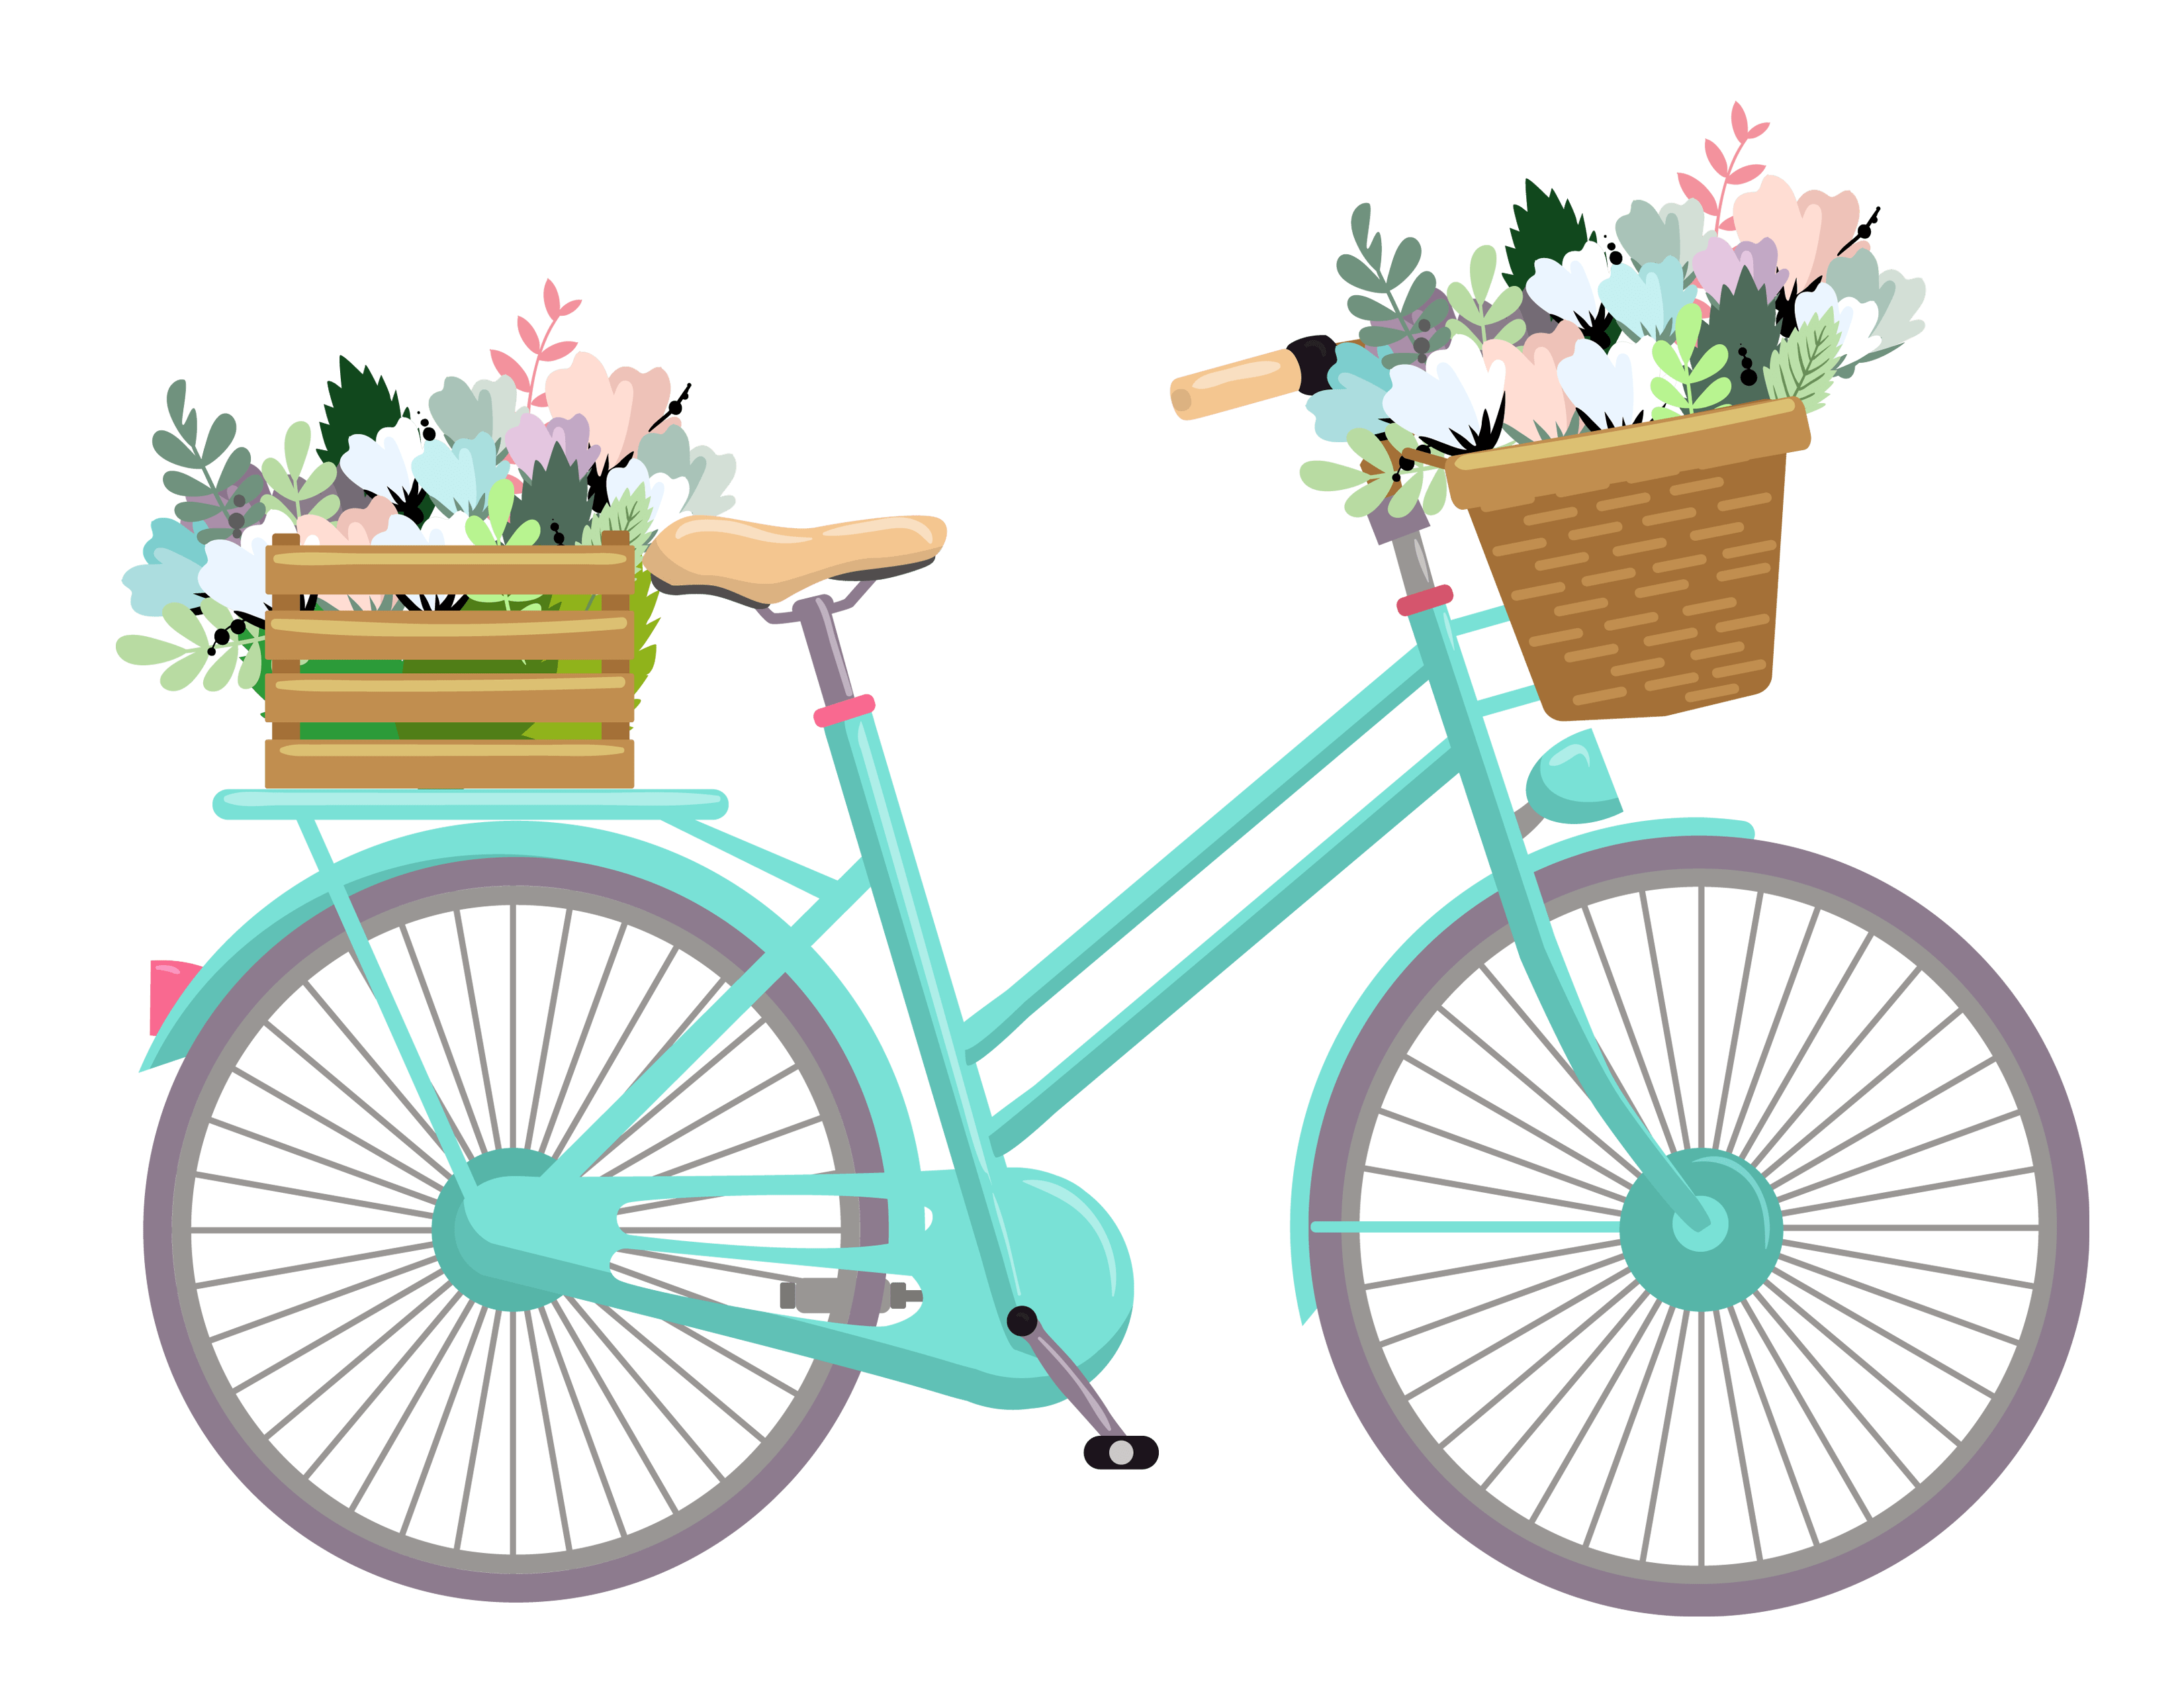 Clipart bike flower. With flowers by erica